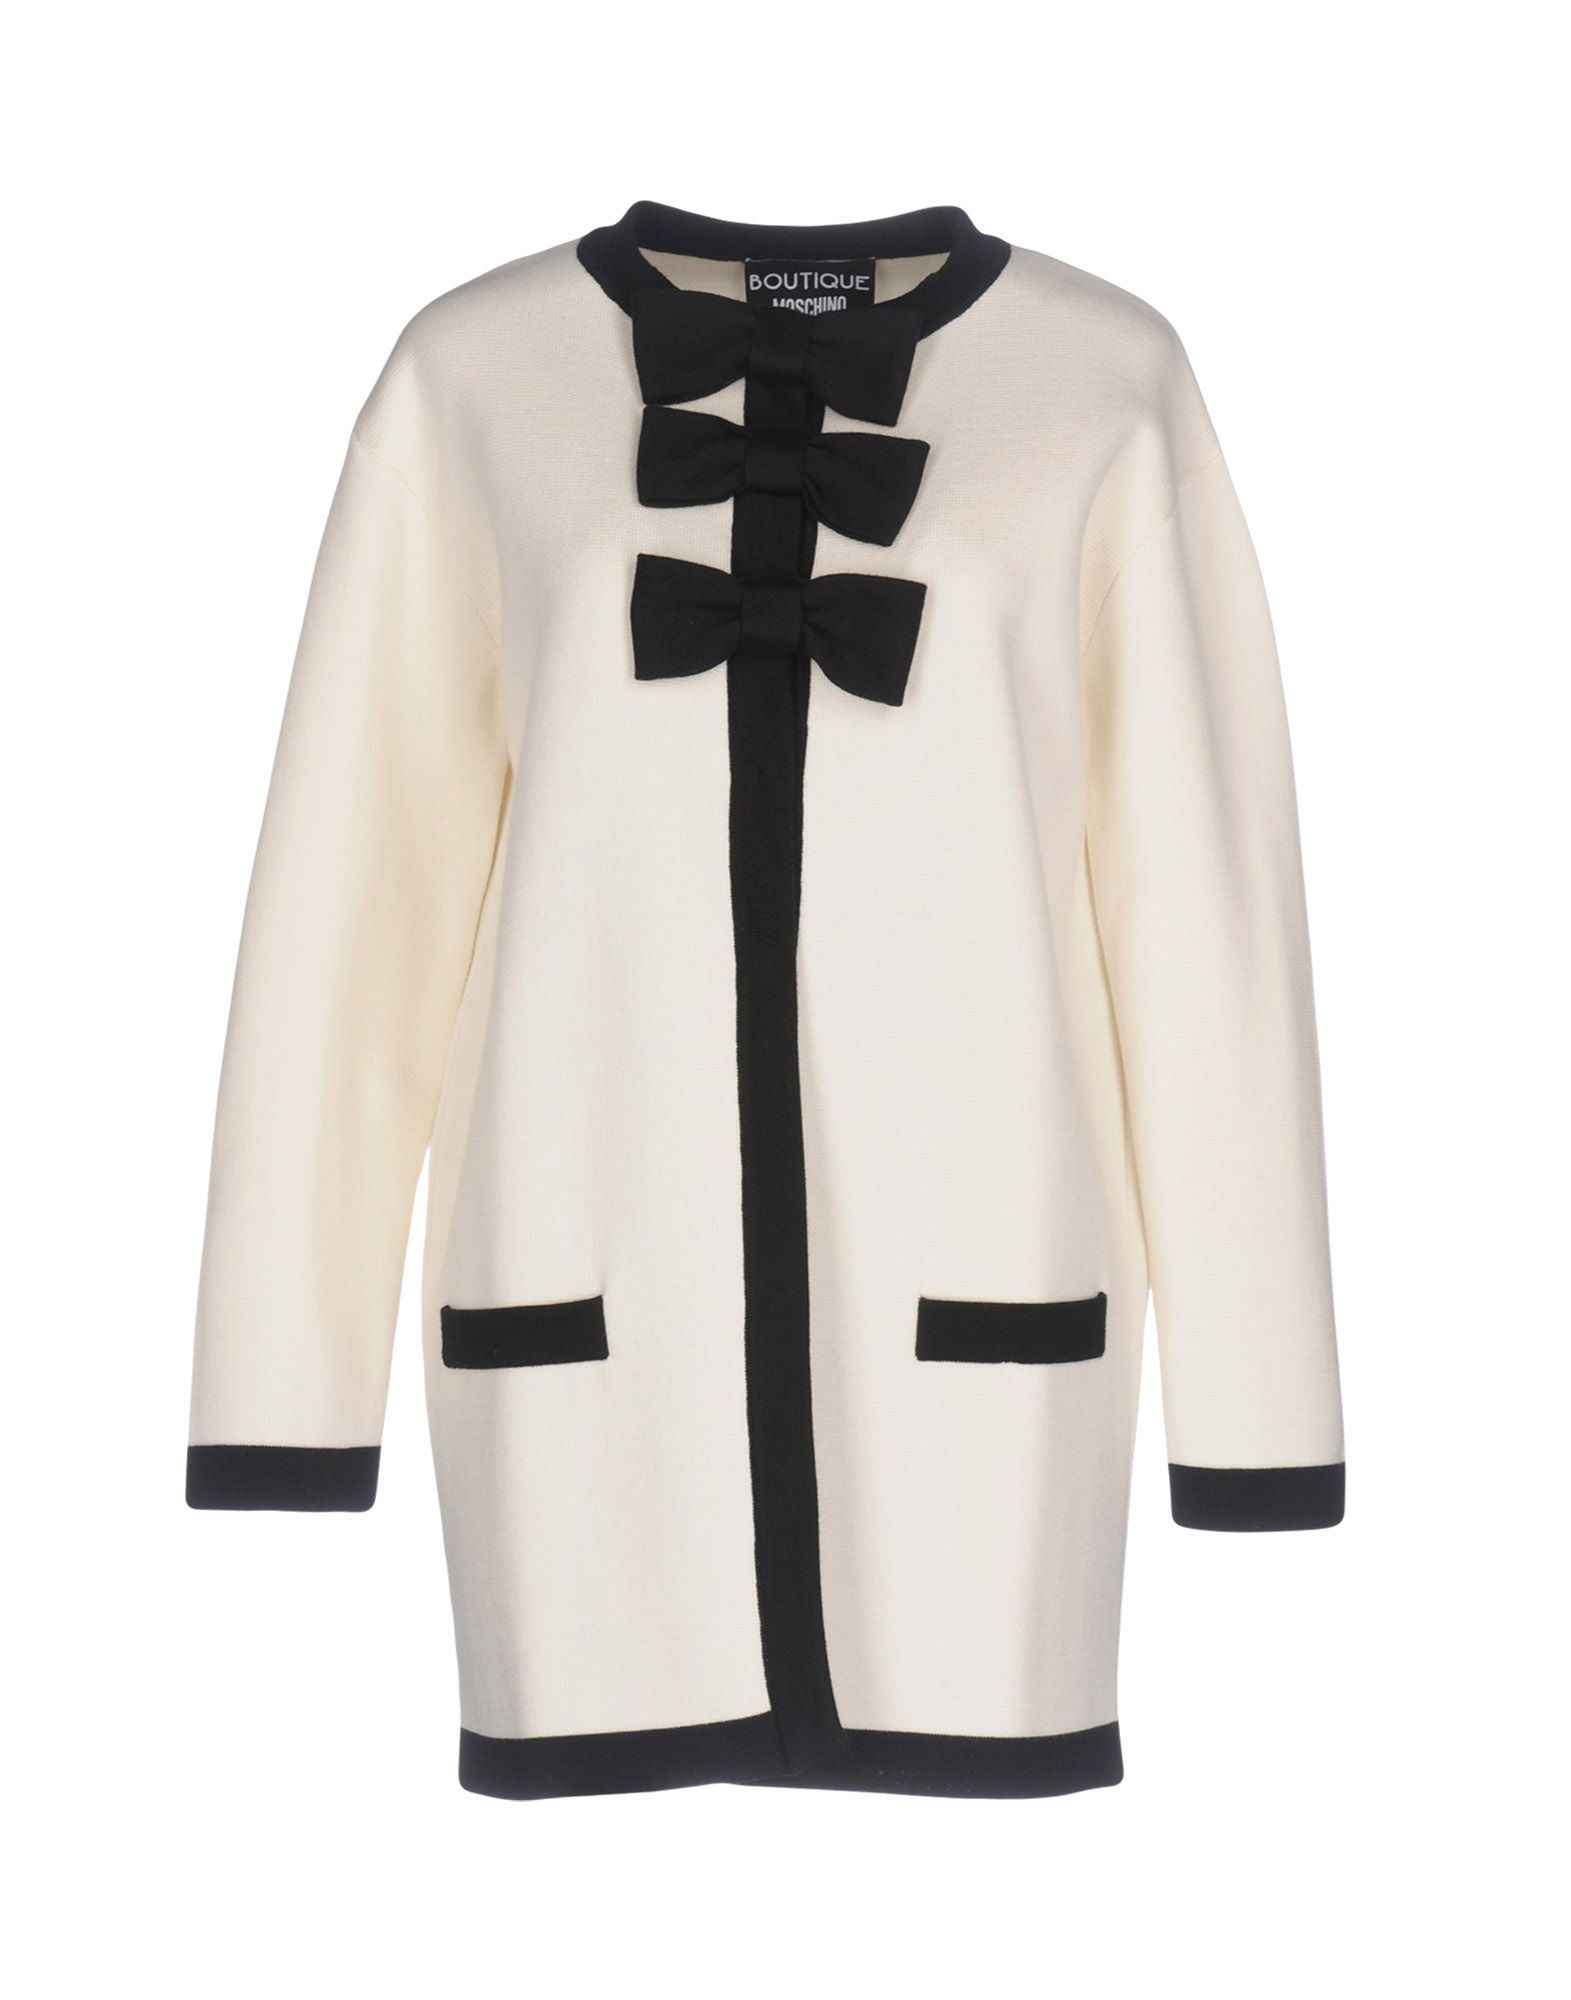 Boutique Moschino Jacket-Kate Middleton